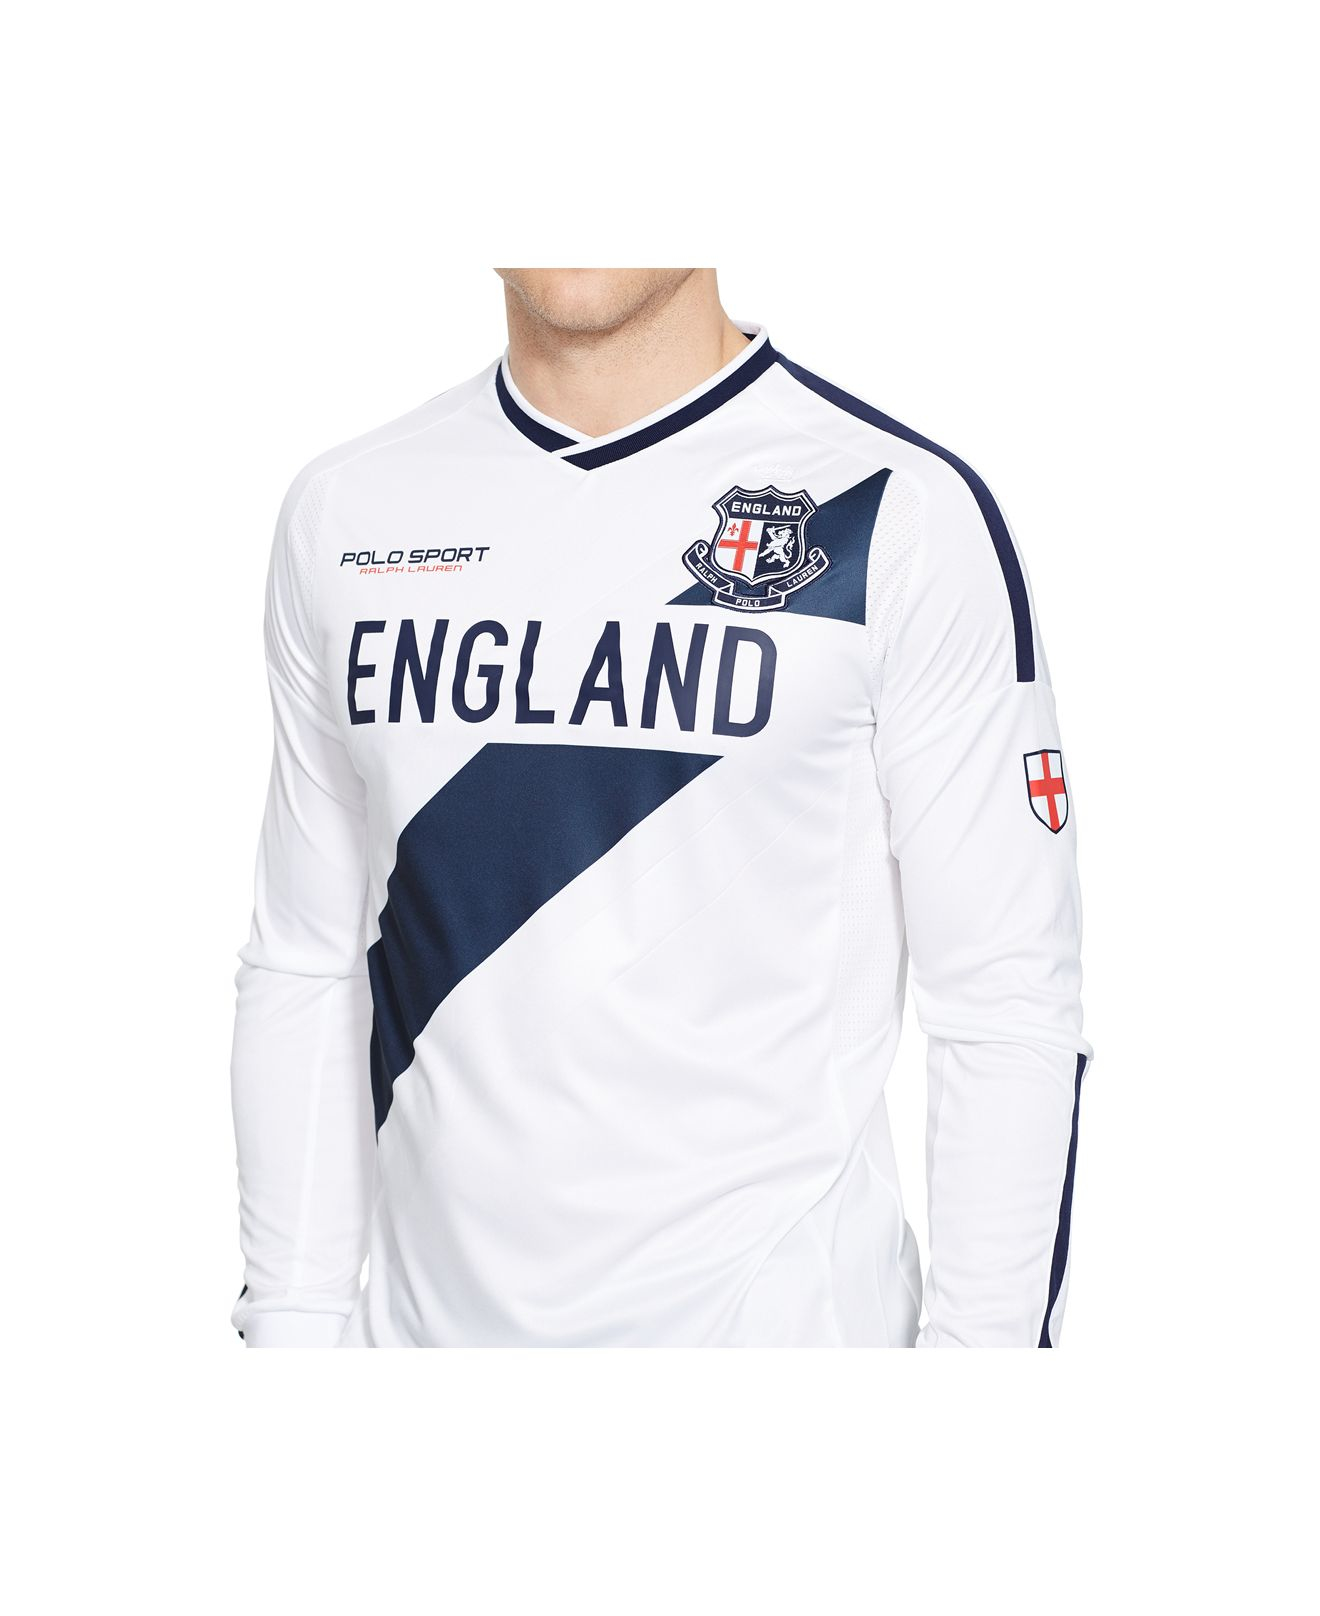 polo ralph lauren polo sport england jersey t shirt in. Black Bedroom Furniture Sets. Home Design Ideas